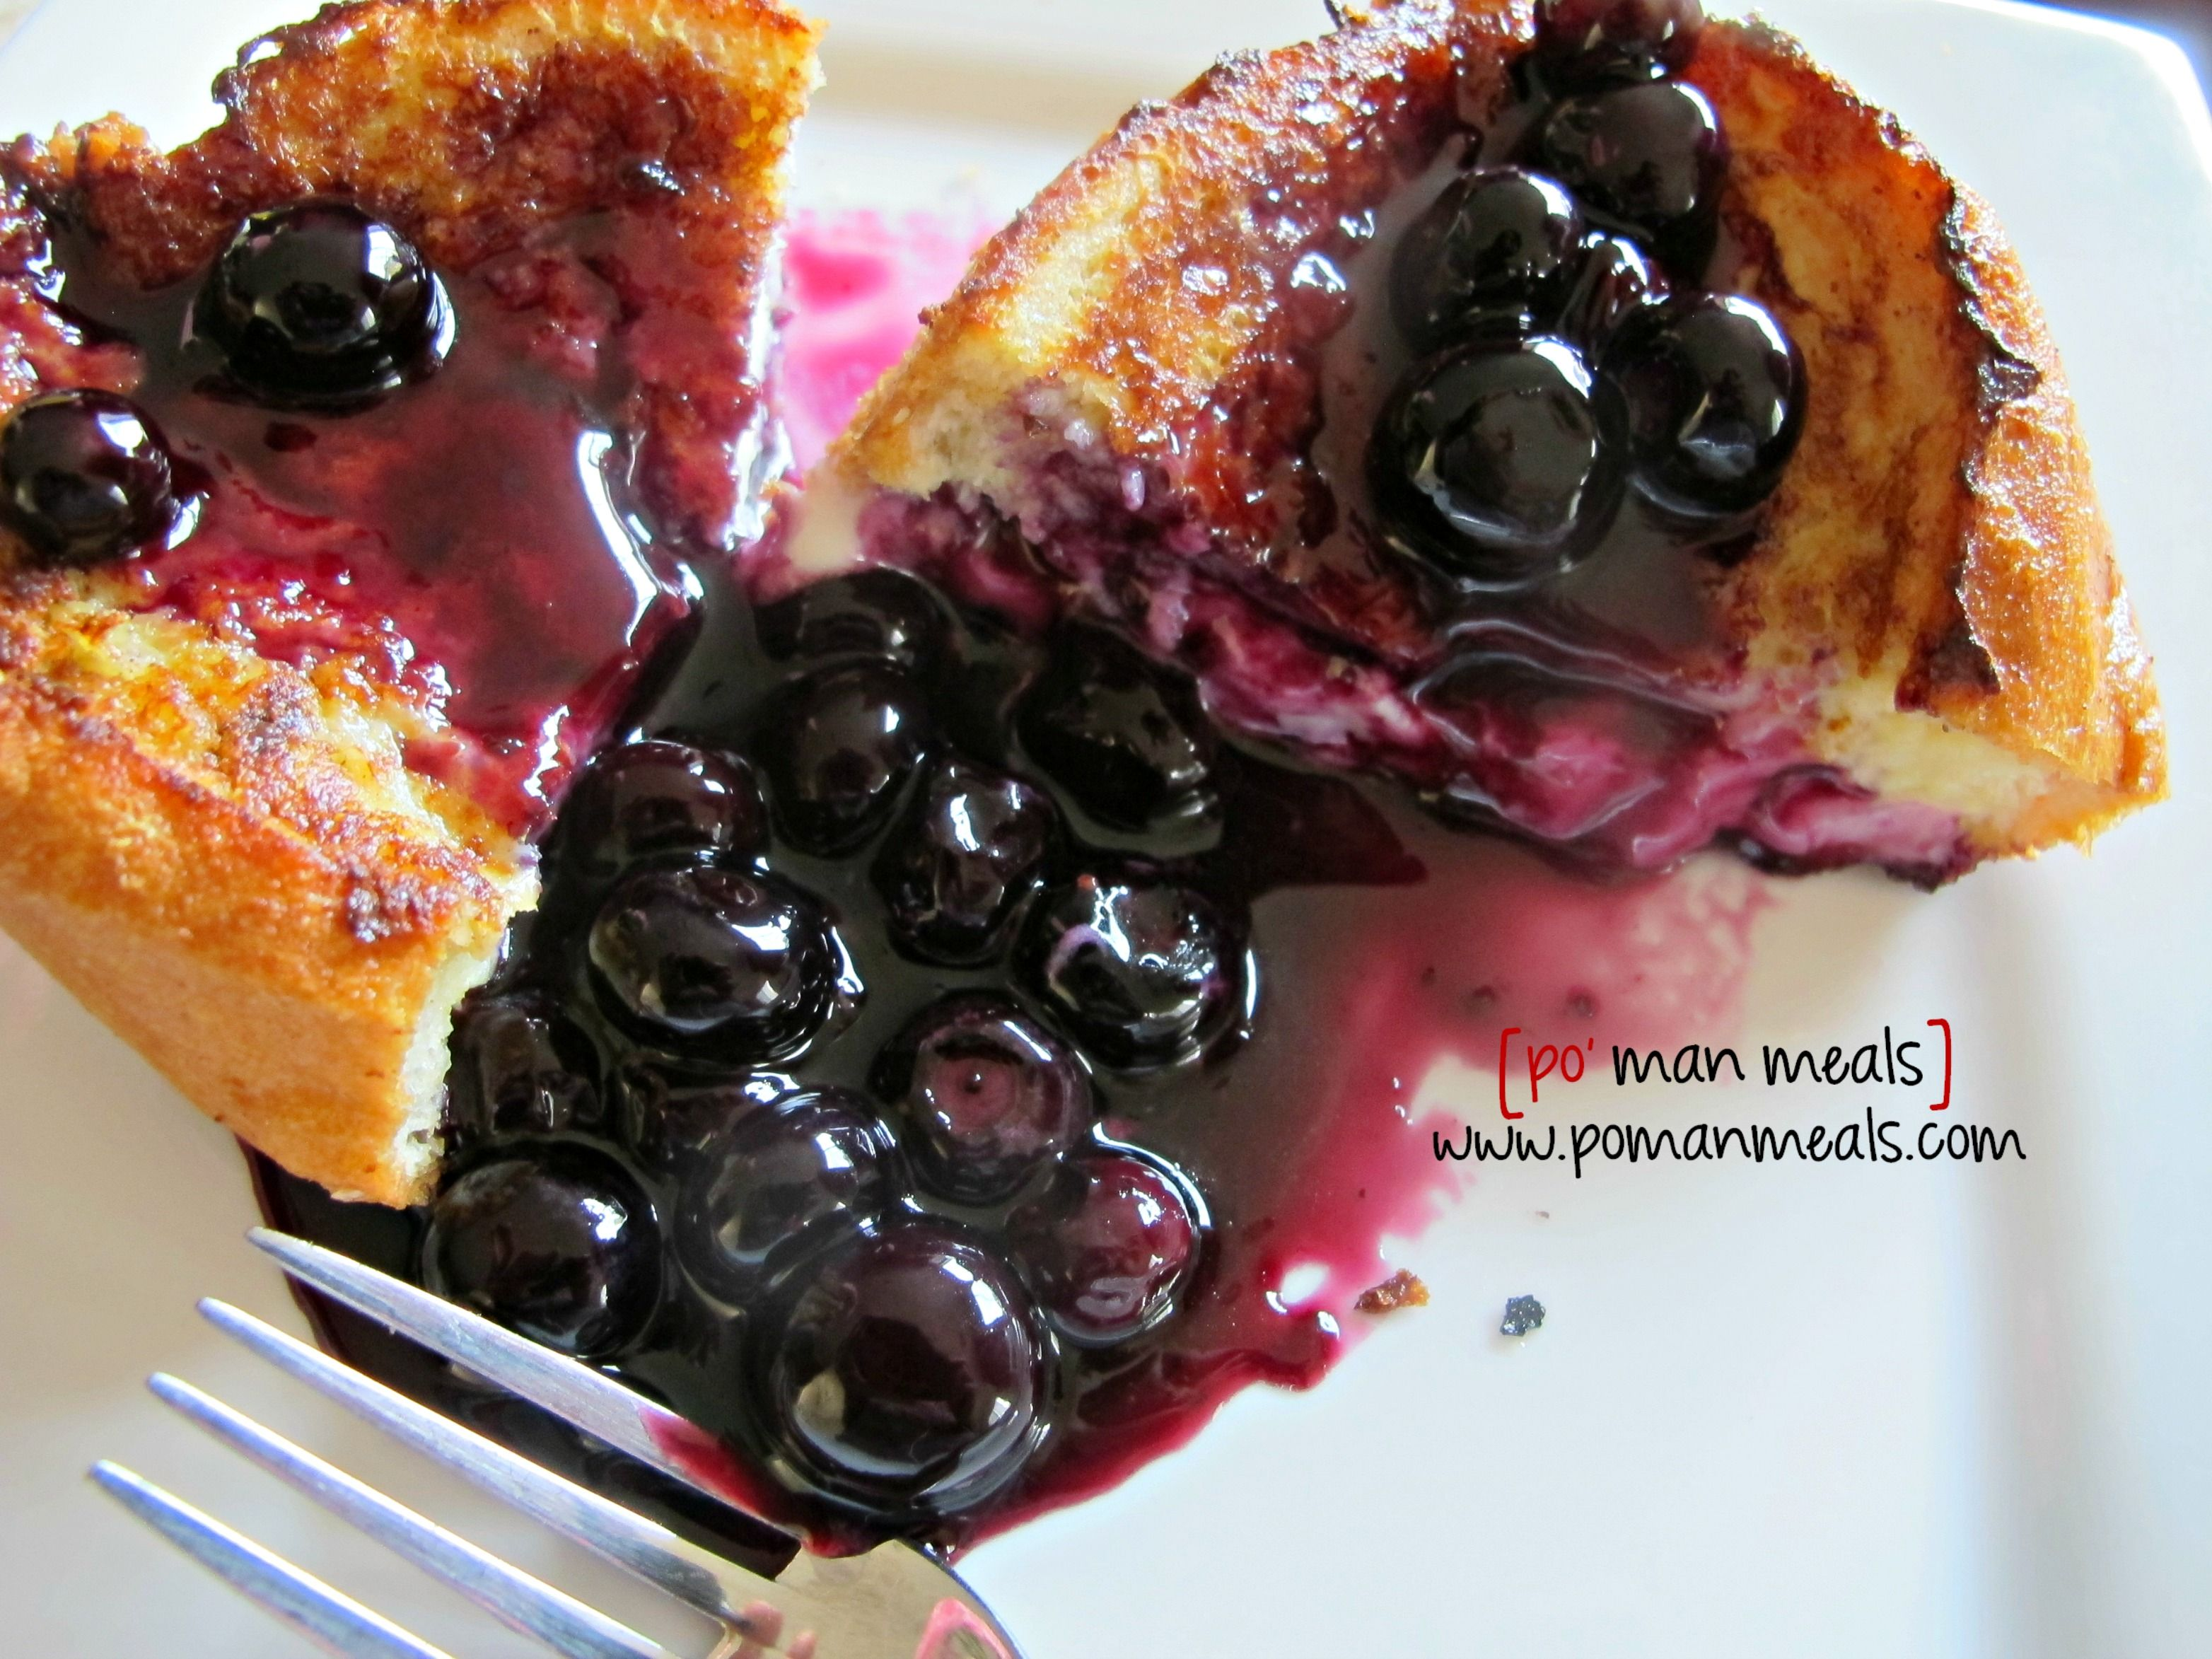 Stuffed French Toast with Blueberry Orange Syrup.   Oh man this looks good!